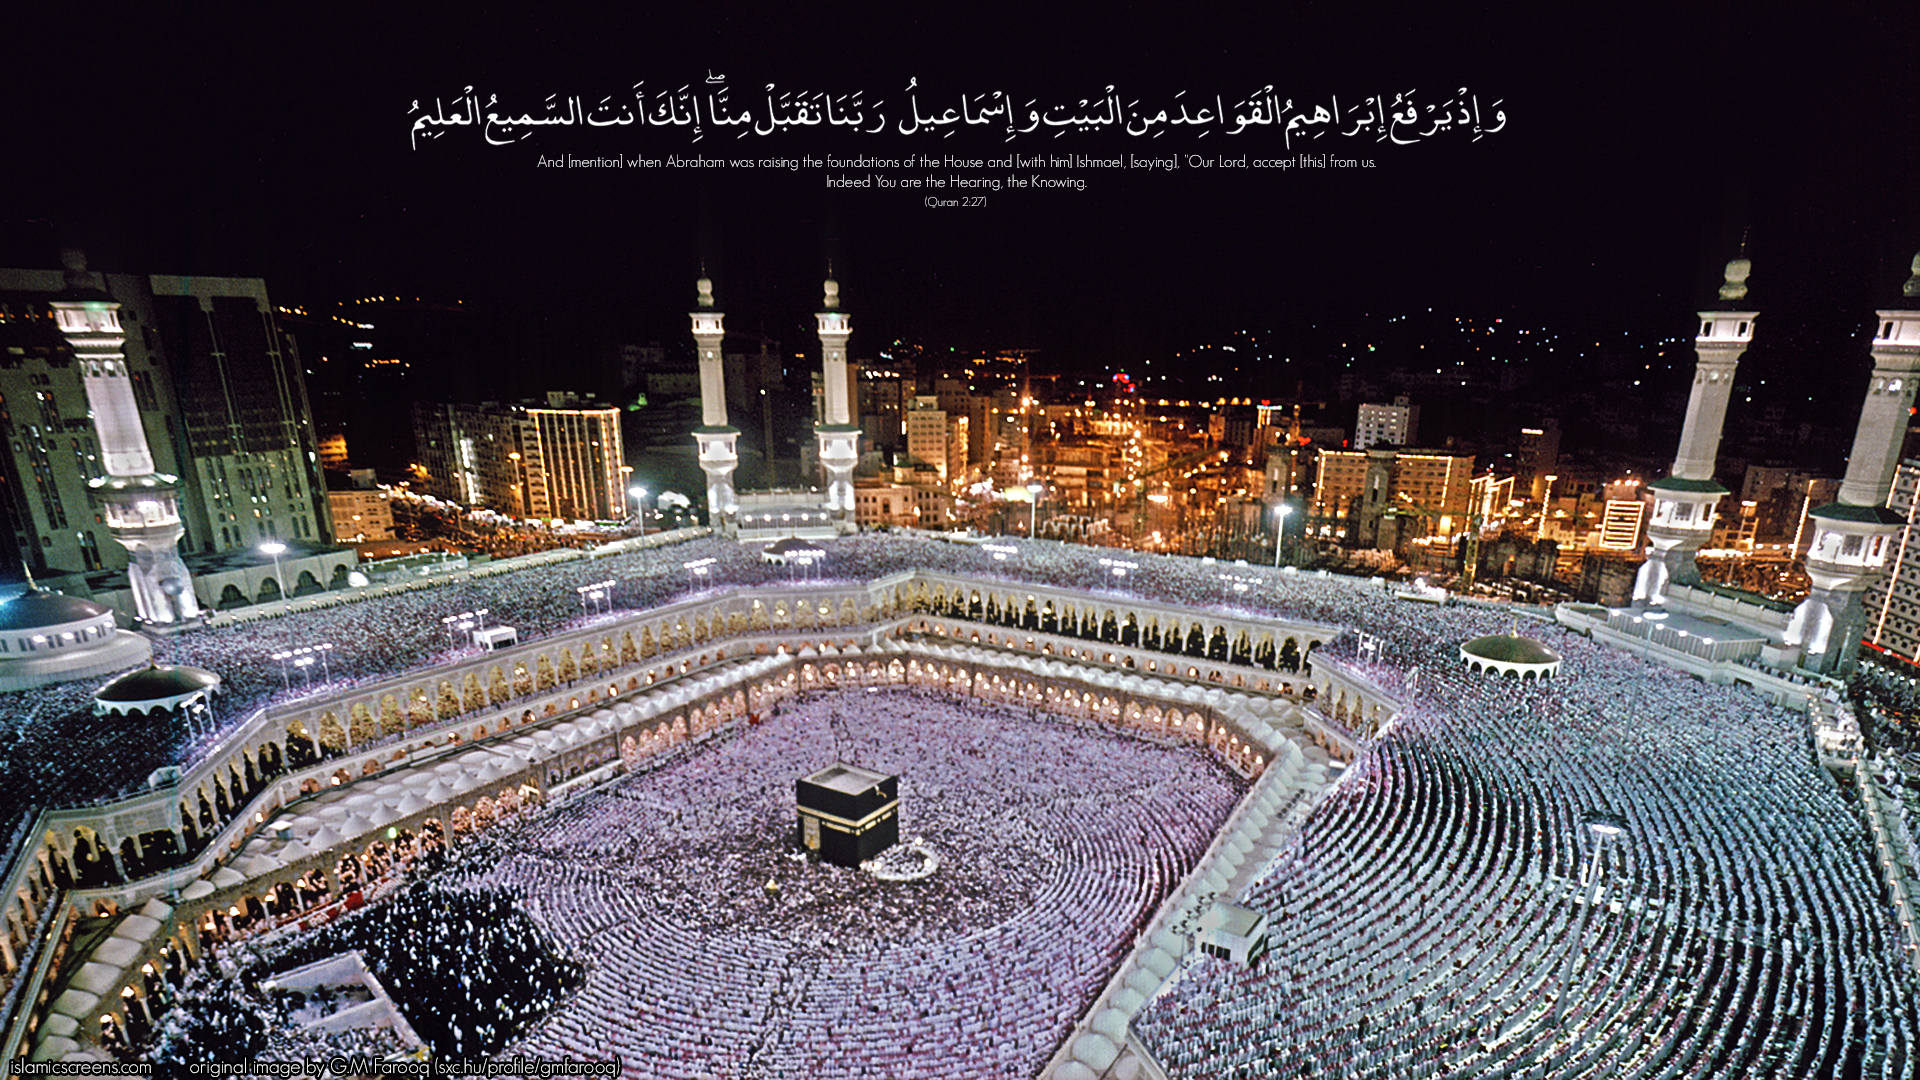 (A pic of MECCA)